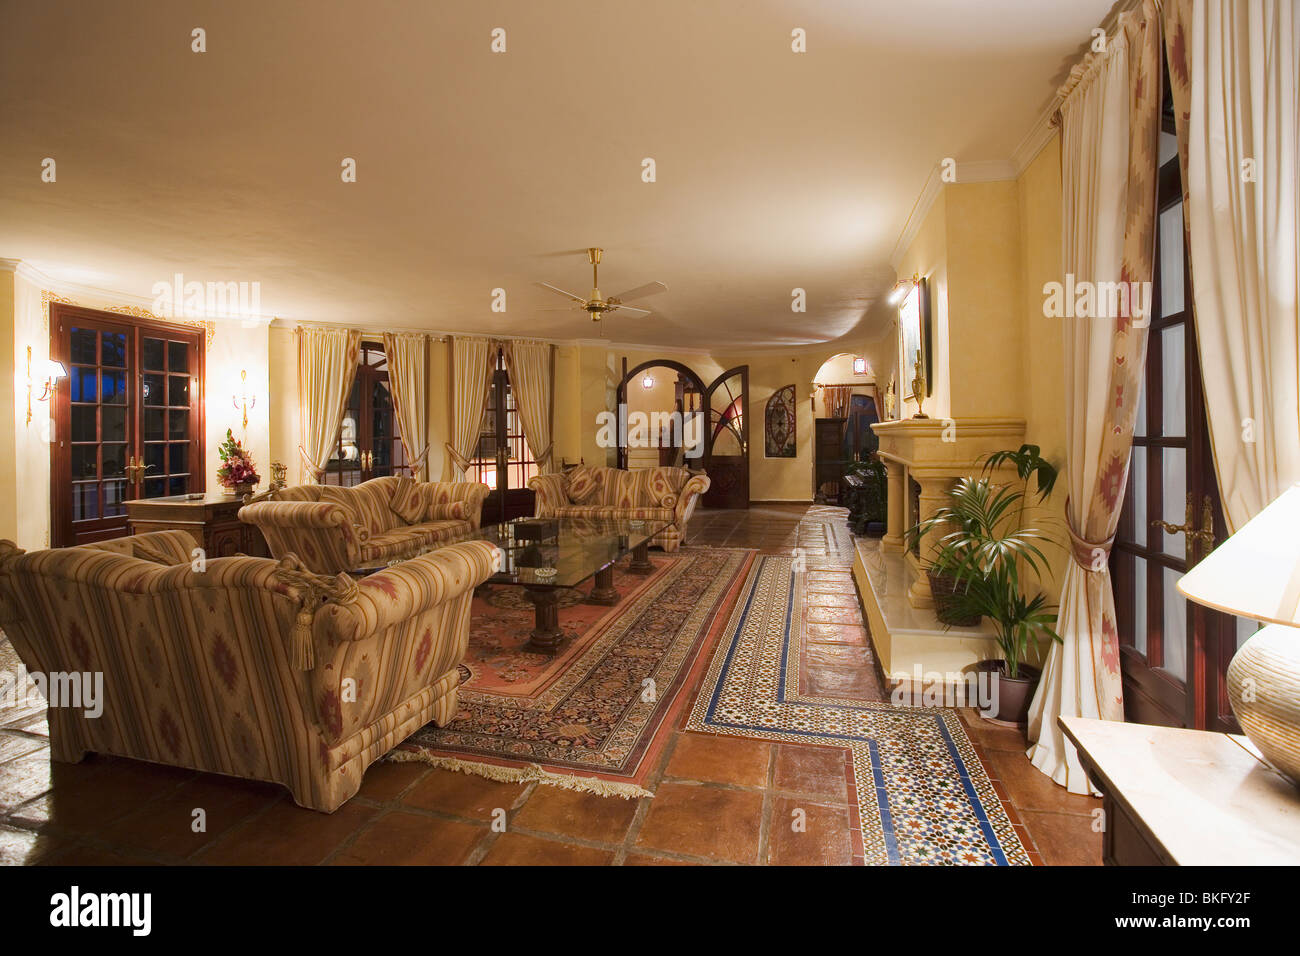 Terracotta And Moroccan Floor Tiles On Floor Of Large Spanish Country Stock Photo Royalty Free